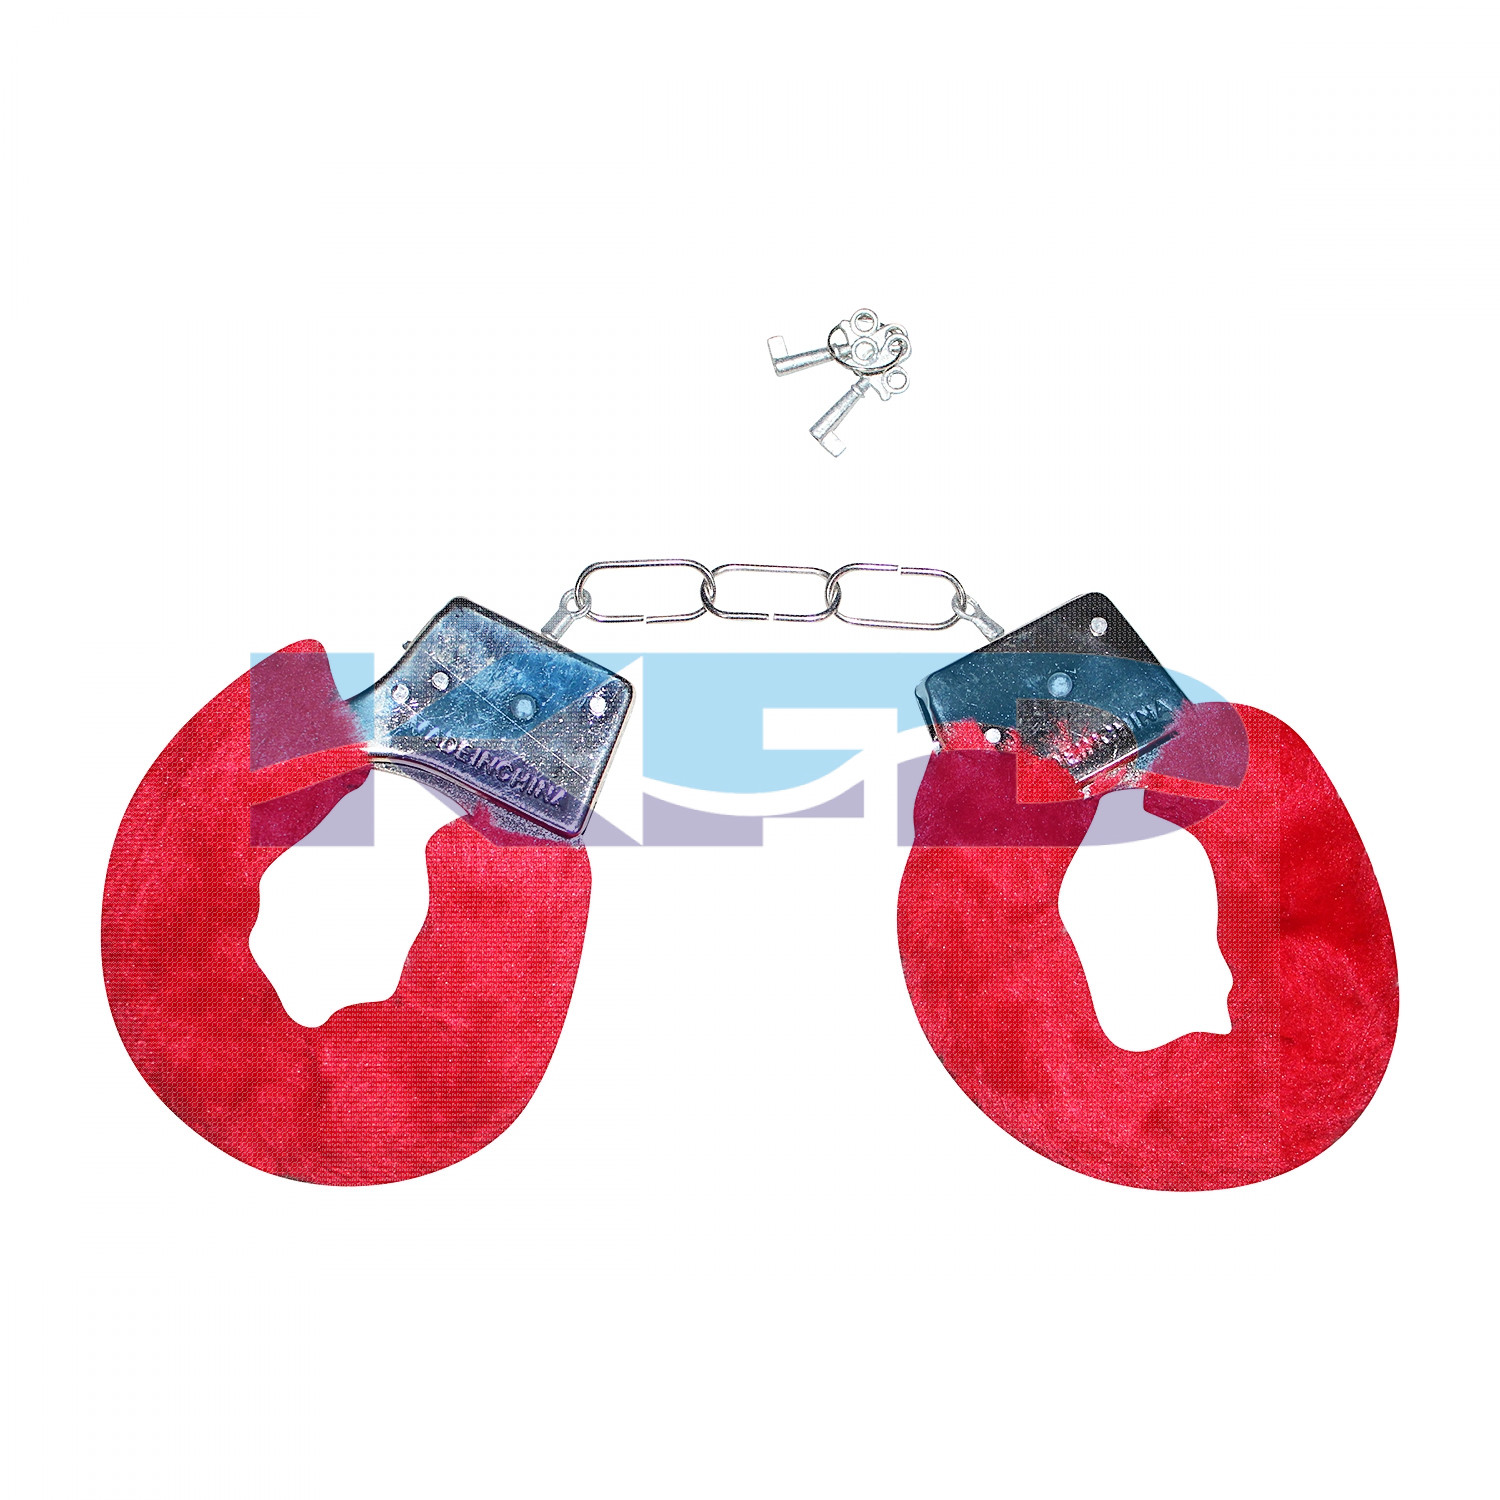 Hand Cuffs Red For Kids/Phenovo Police Cop Sheriff Officer Handcuff Toy/Police Role Play Costume Accessories Metal Handcuffs/For Kids Annual function/Theme Party/Competition/Stage Shows/Birthday Party Dress